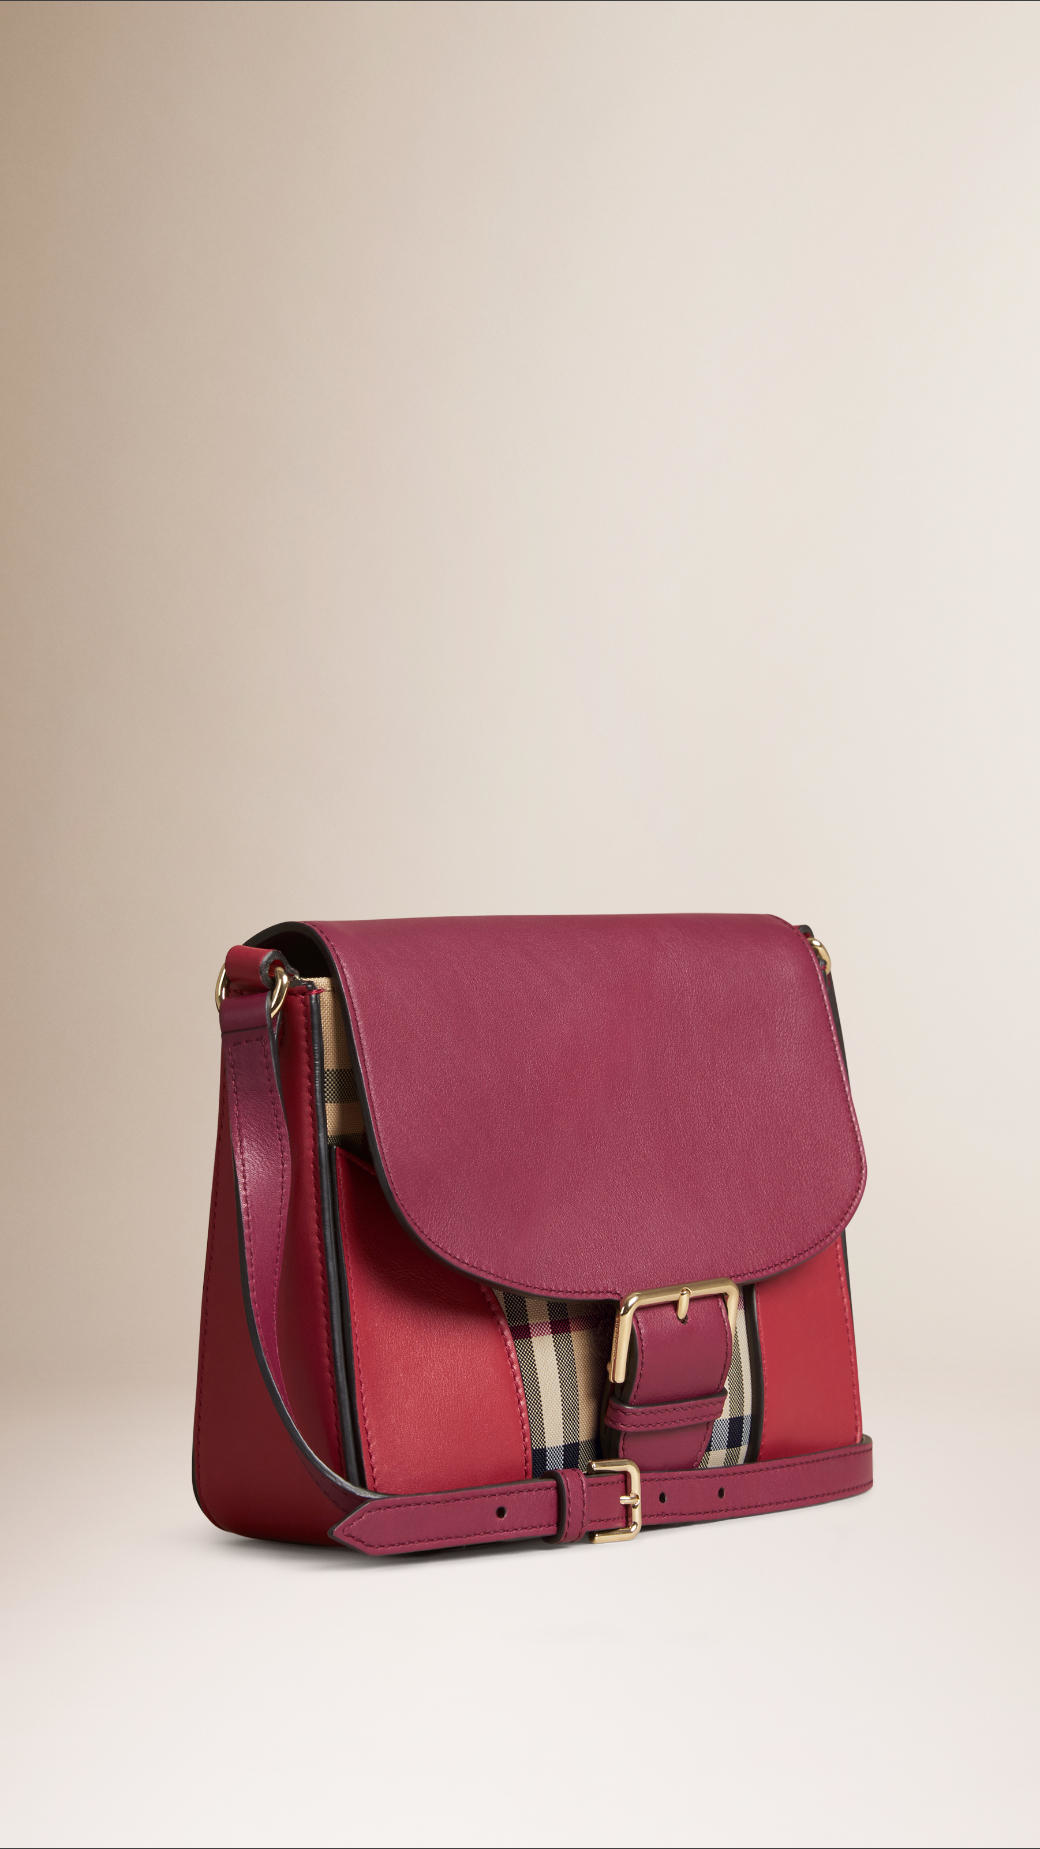 fd8a9a5dae91 Lyst - Burberry The Small Horseferry Check And Leather Cross-Body ...